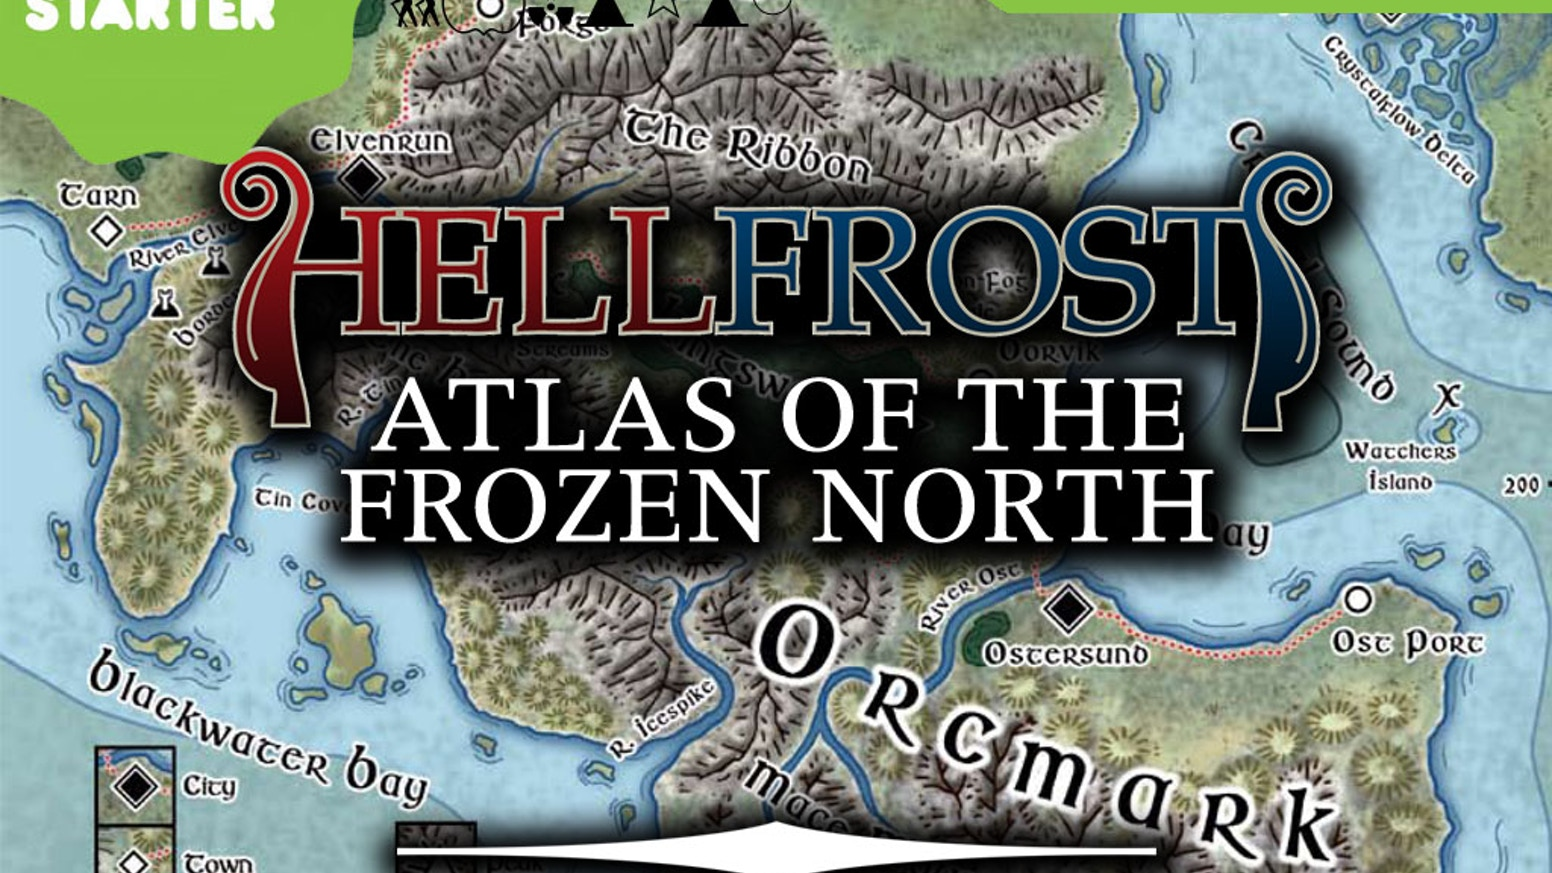 See the Land of Ice and Snow in Hi-Def! Atlas of the Frozen North brings new detail and exquisite maps for your adventures in Rassilon.